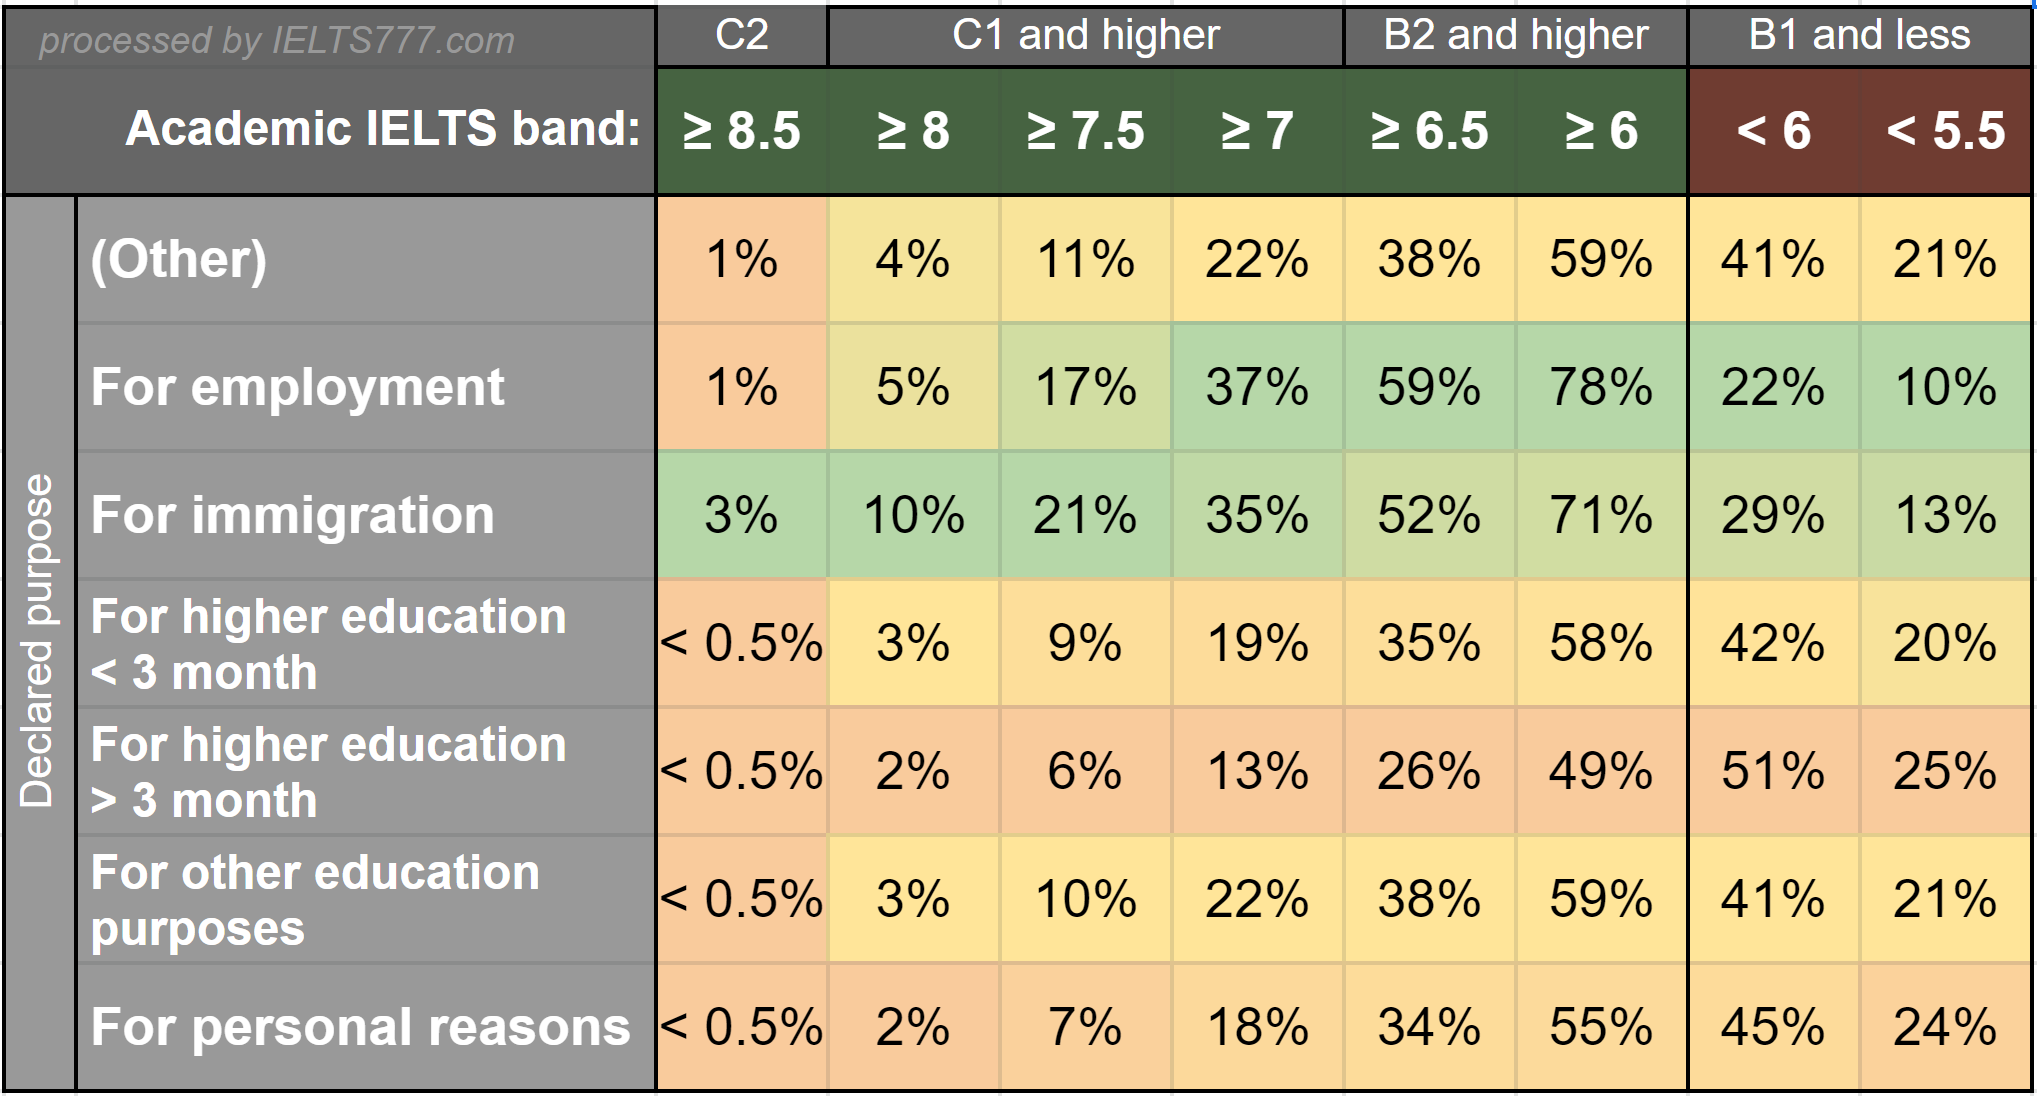 Academic IELTS score statistics: Band distribution by declared purpose